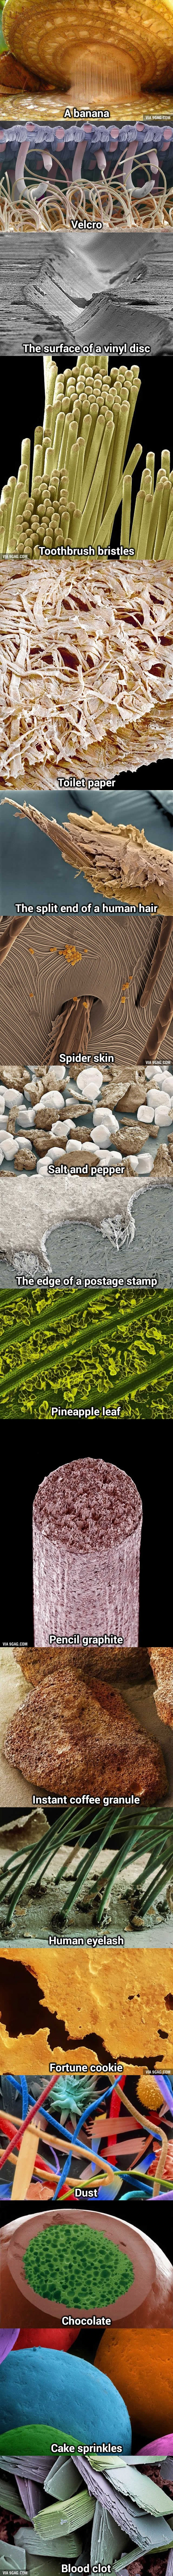 Everyday-Things-Made-Awesome-Under-A-Microscope-wallpaper-wp340698